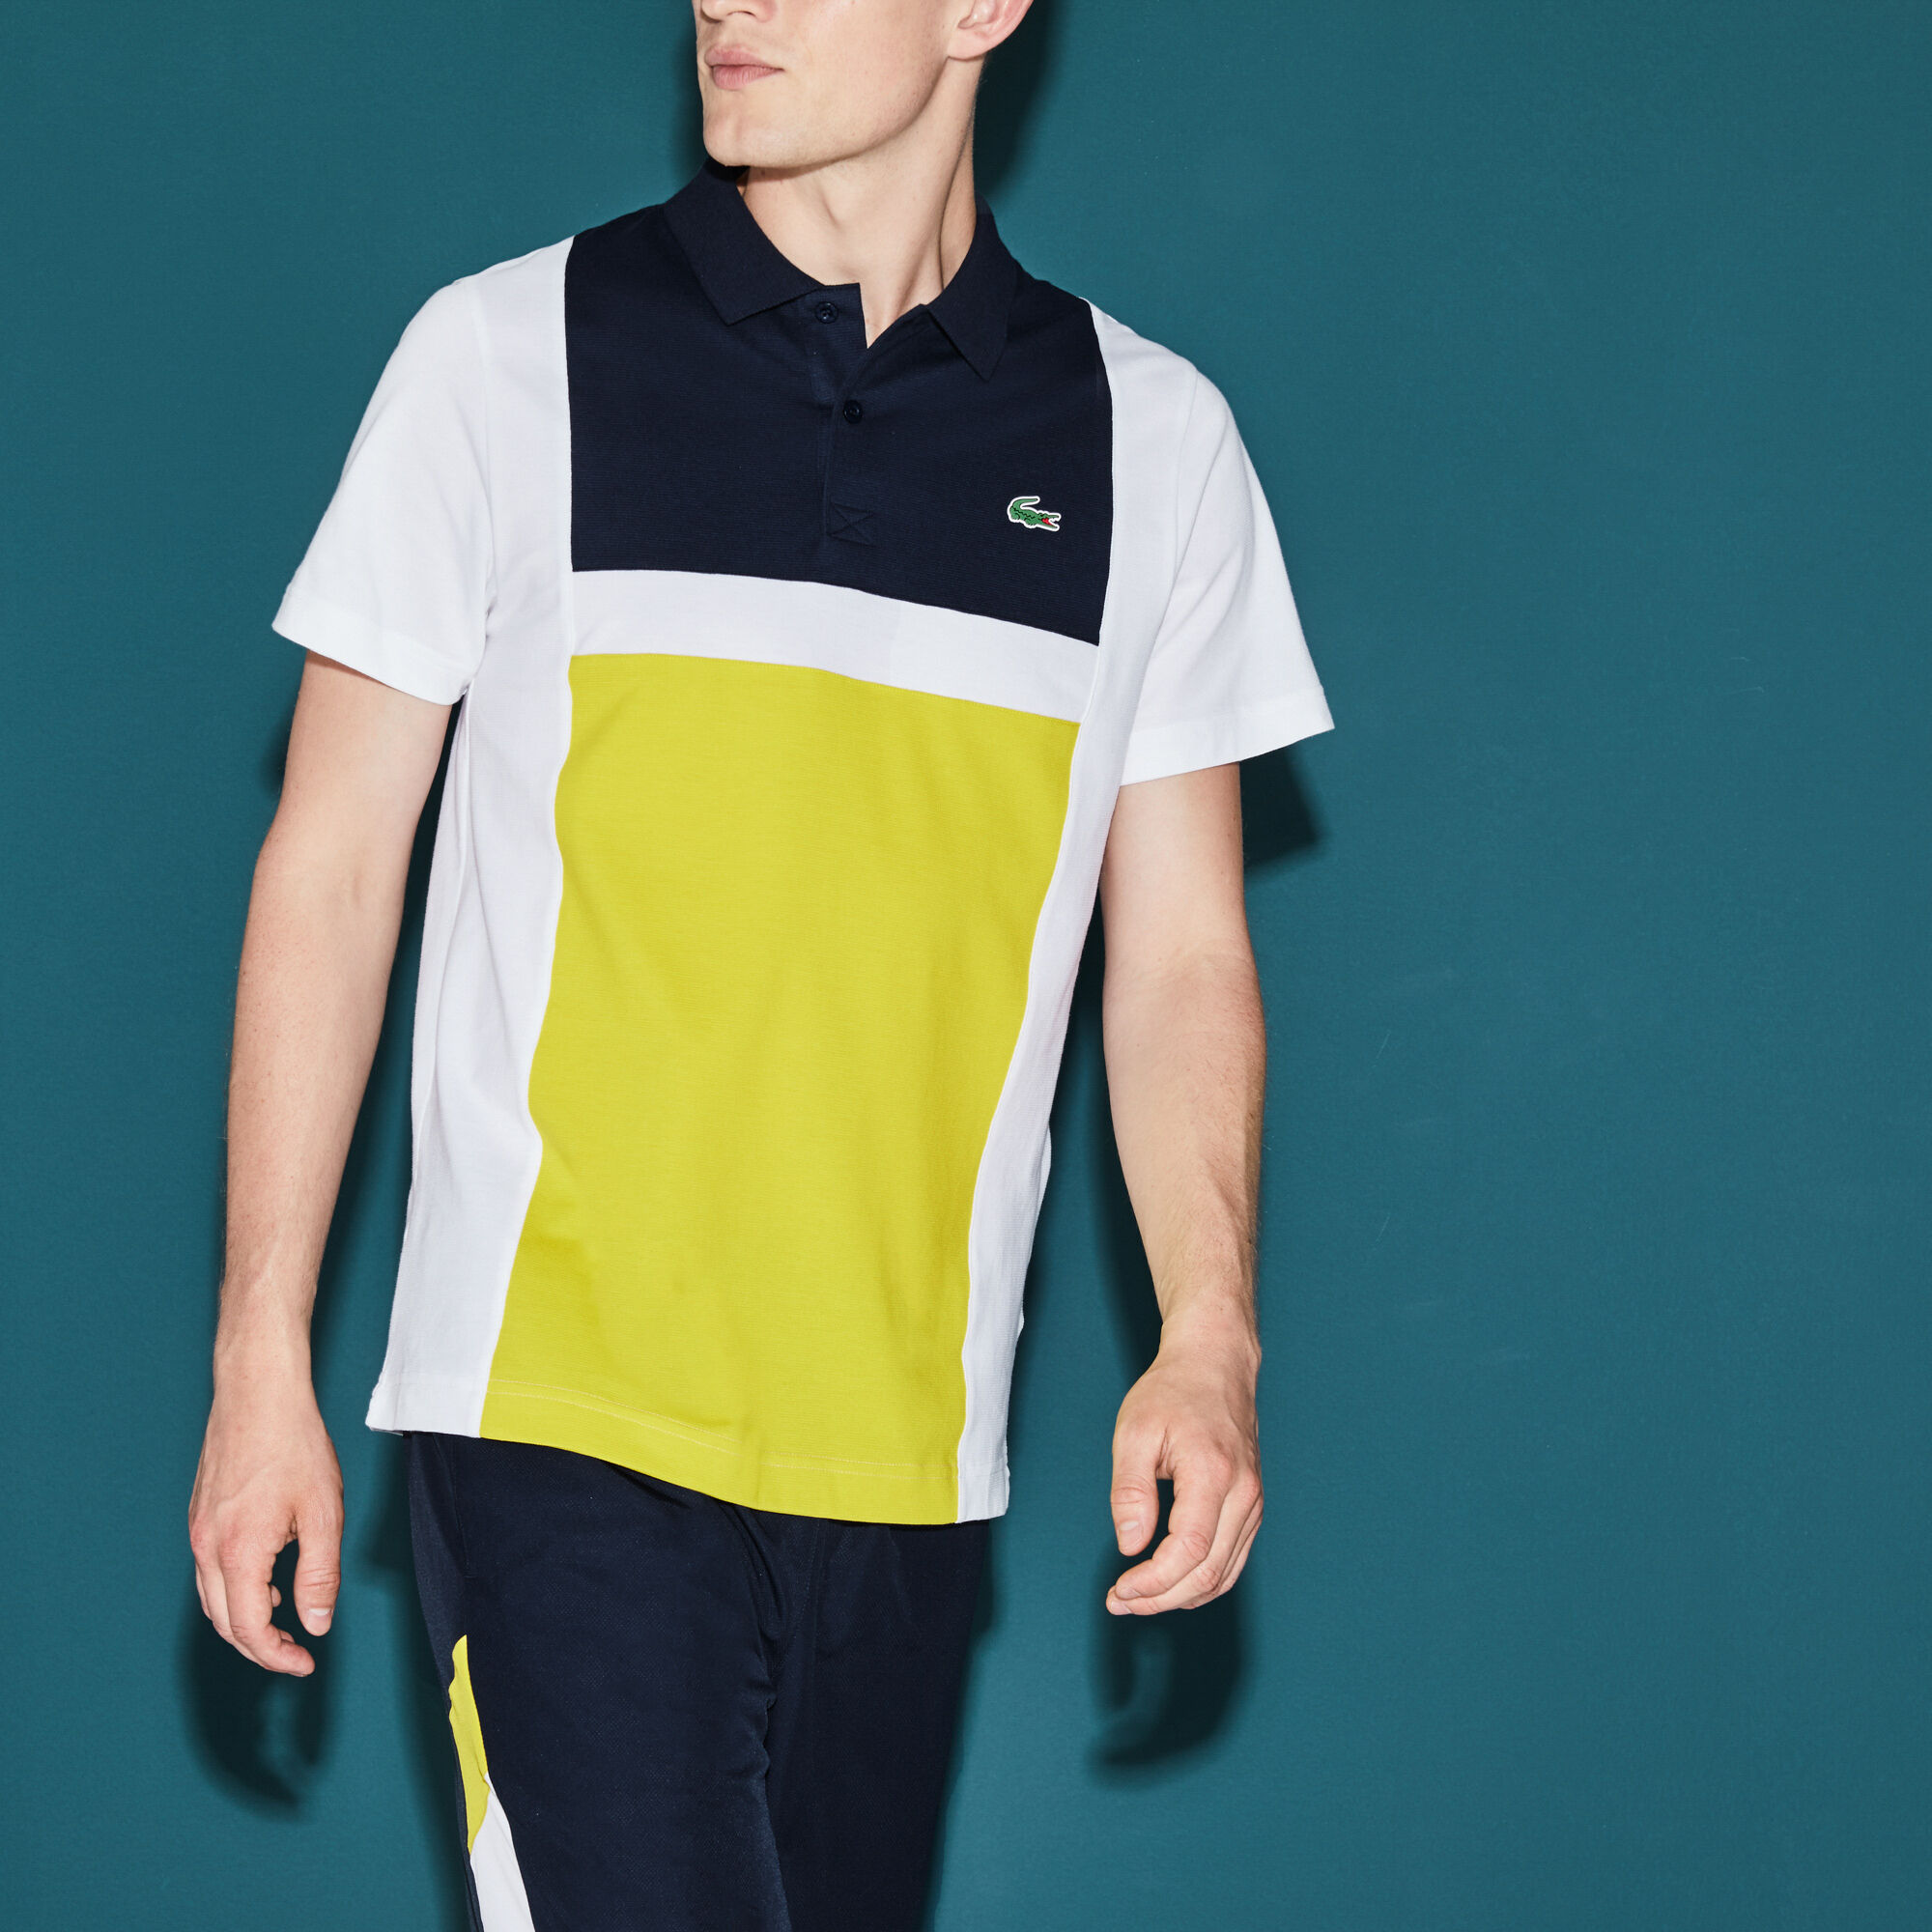 Best Deals On Lacoste Polo Shirts